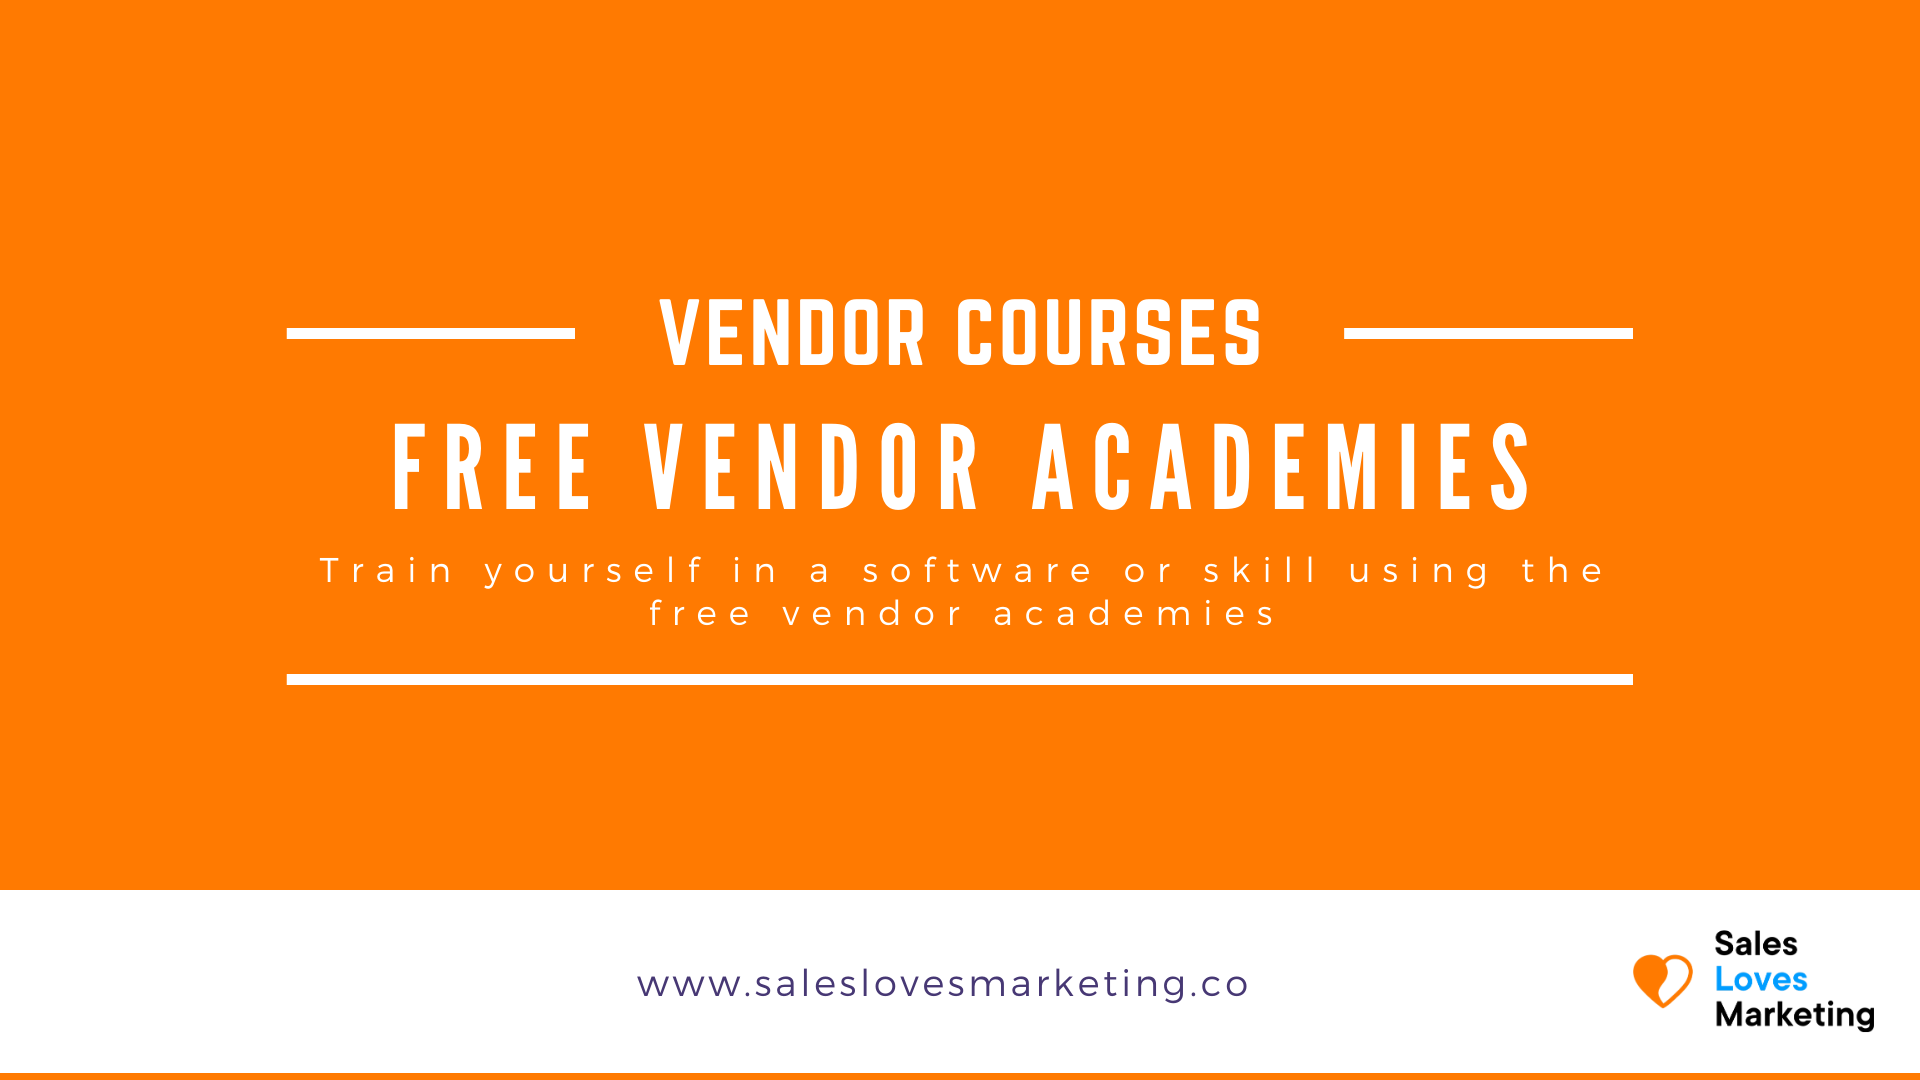 Train yourself for free in digital marketing of sales via these free courses from software vendors